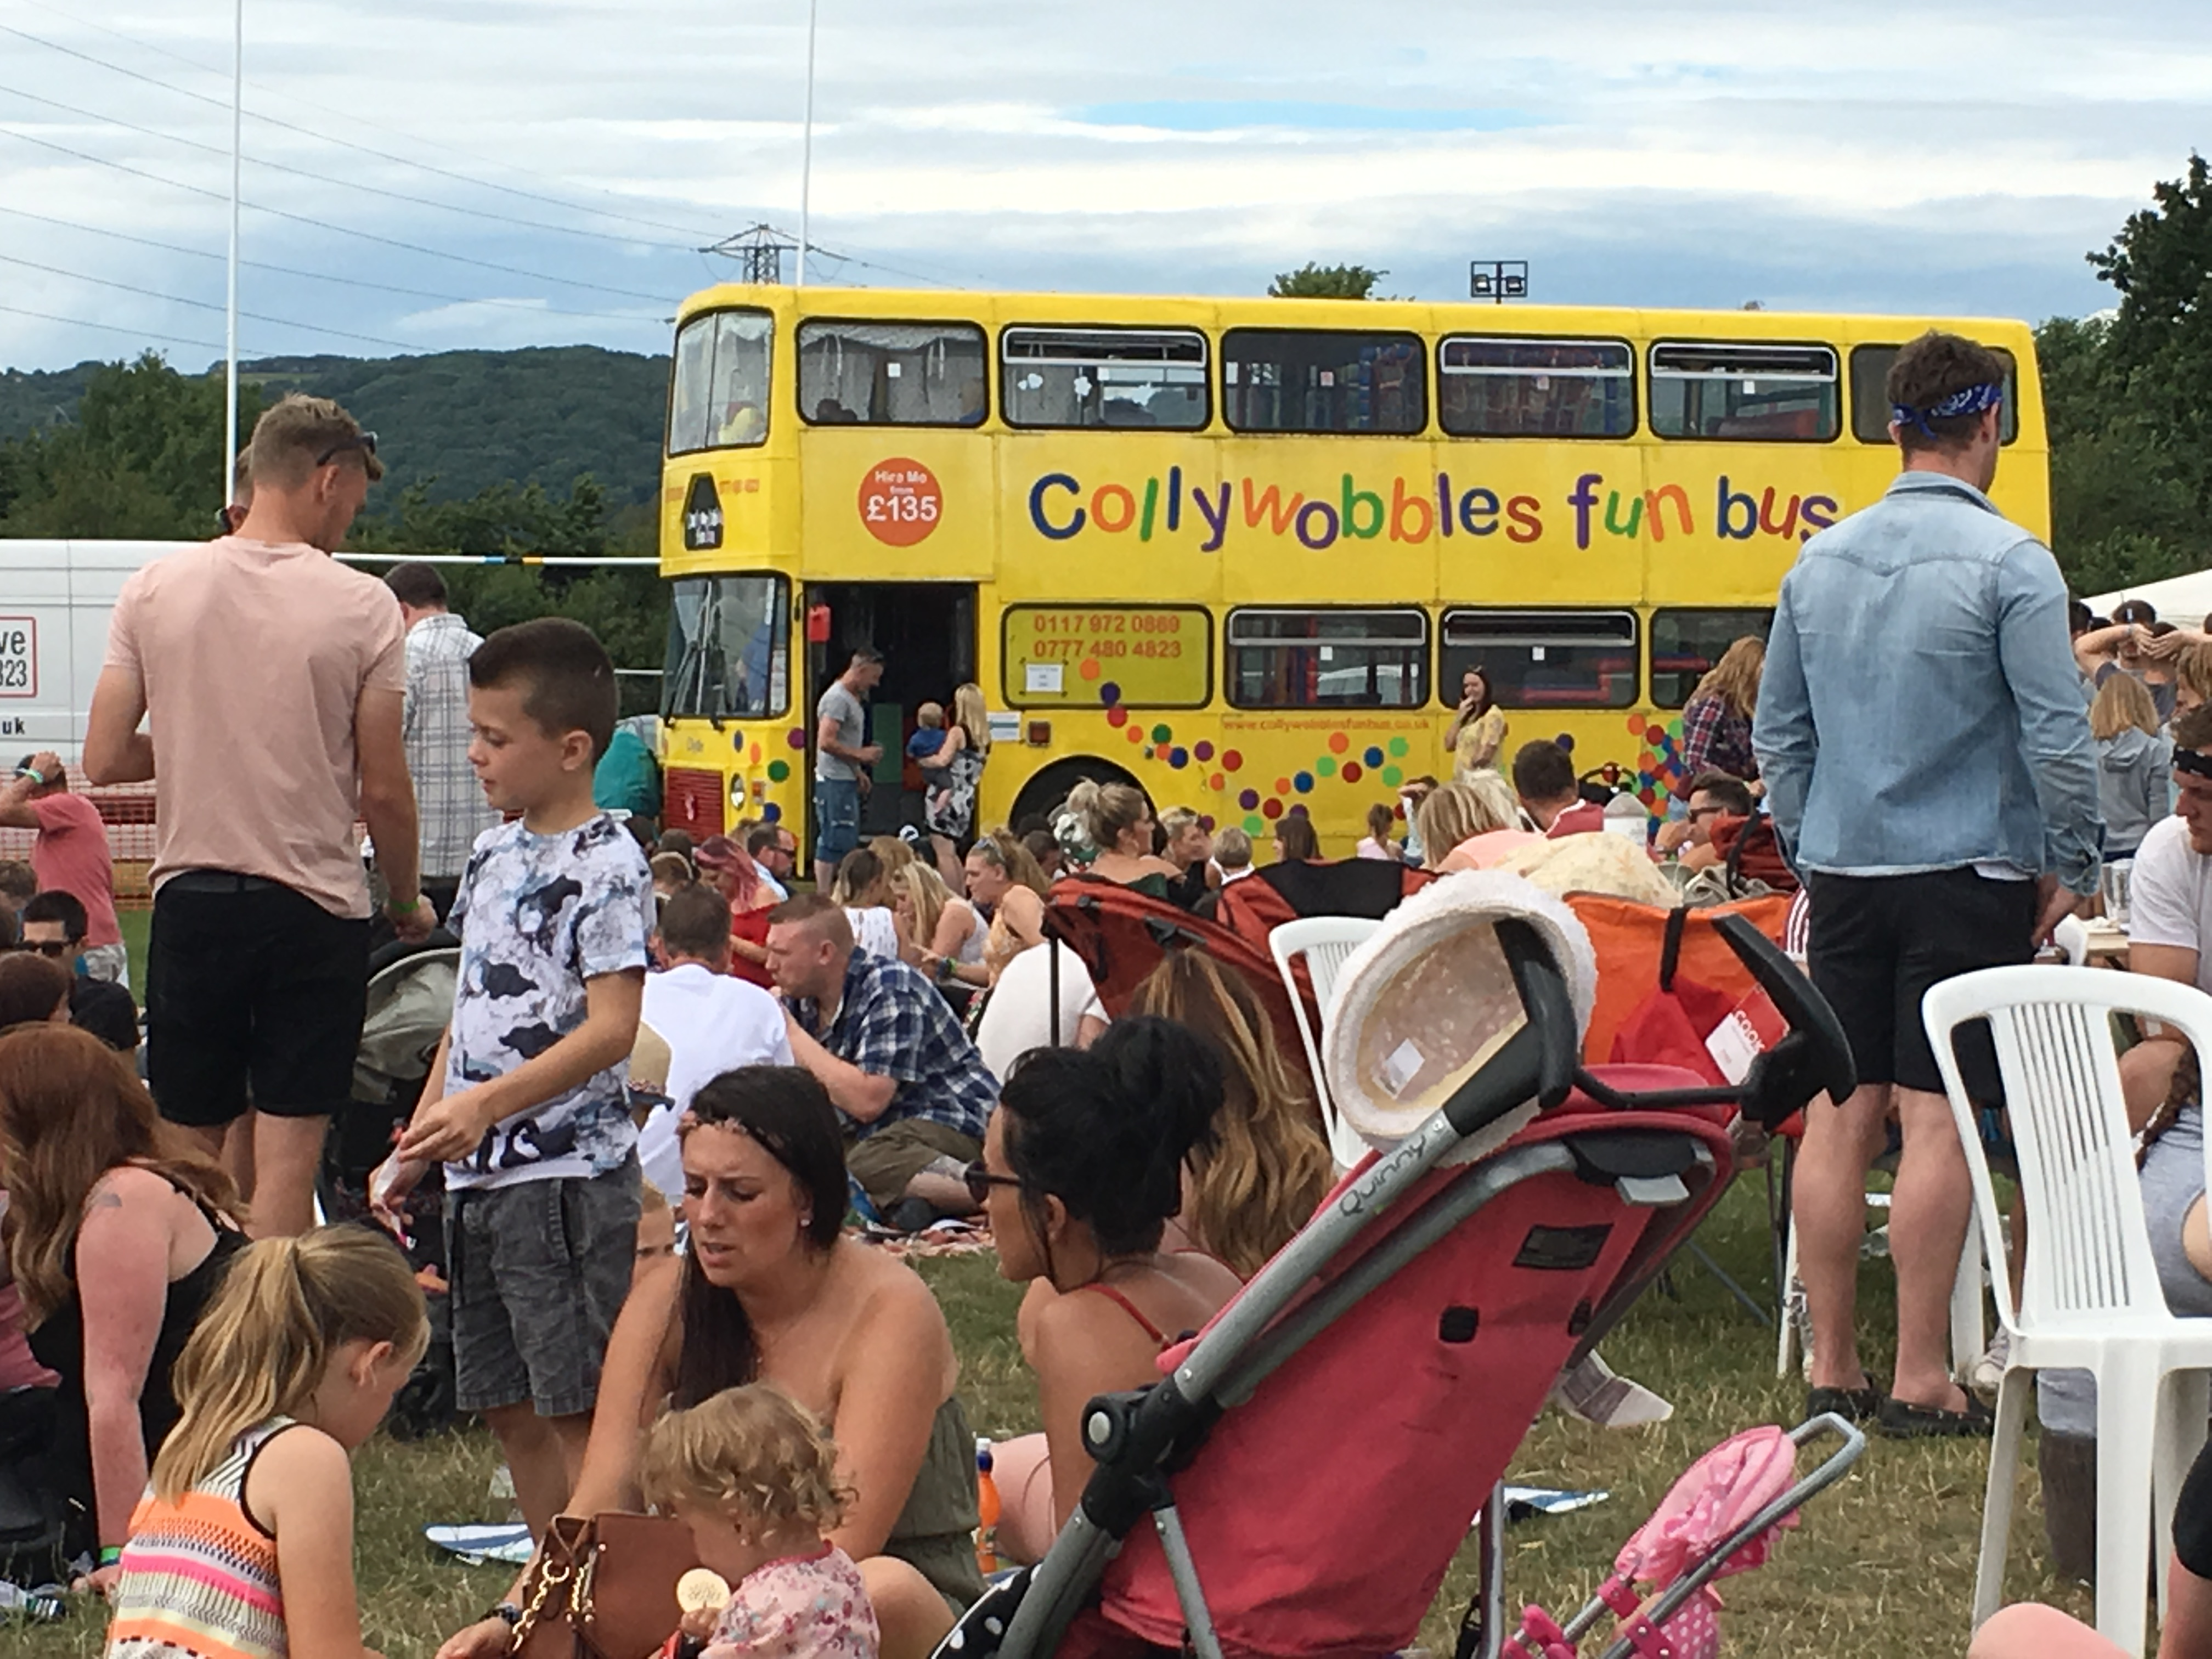 The Playbus